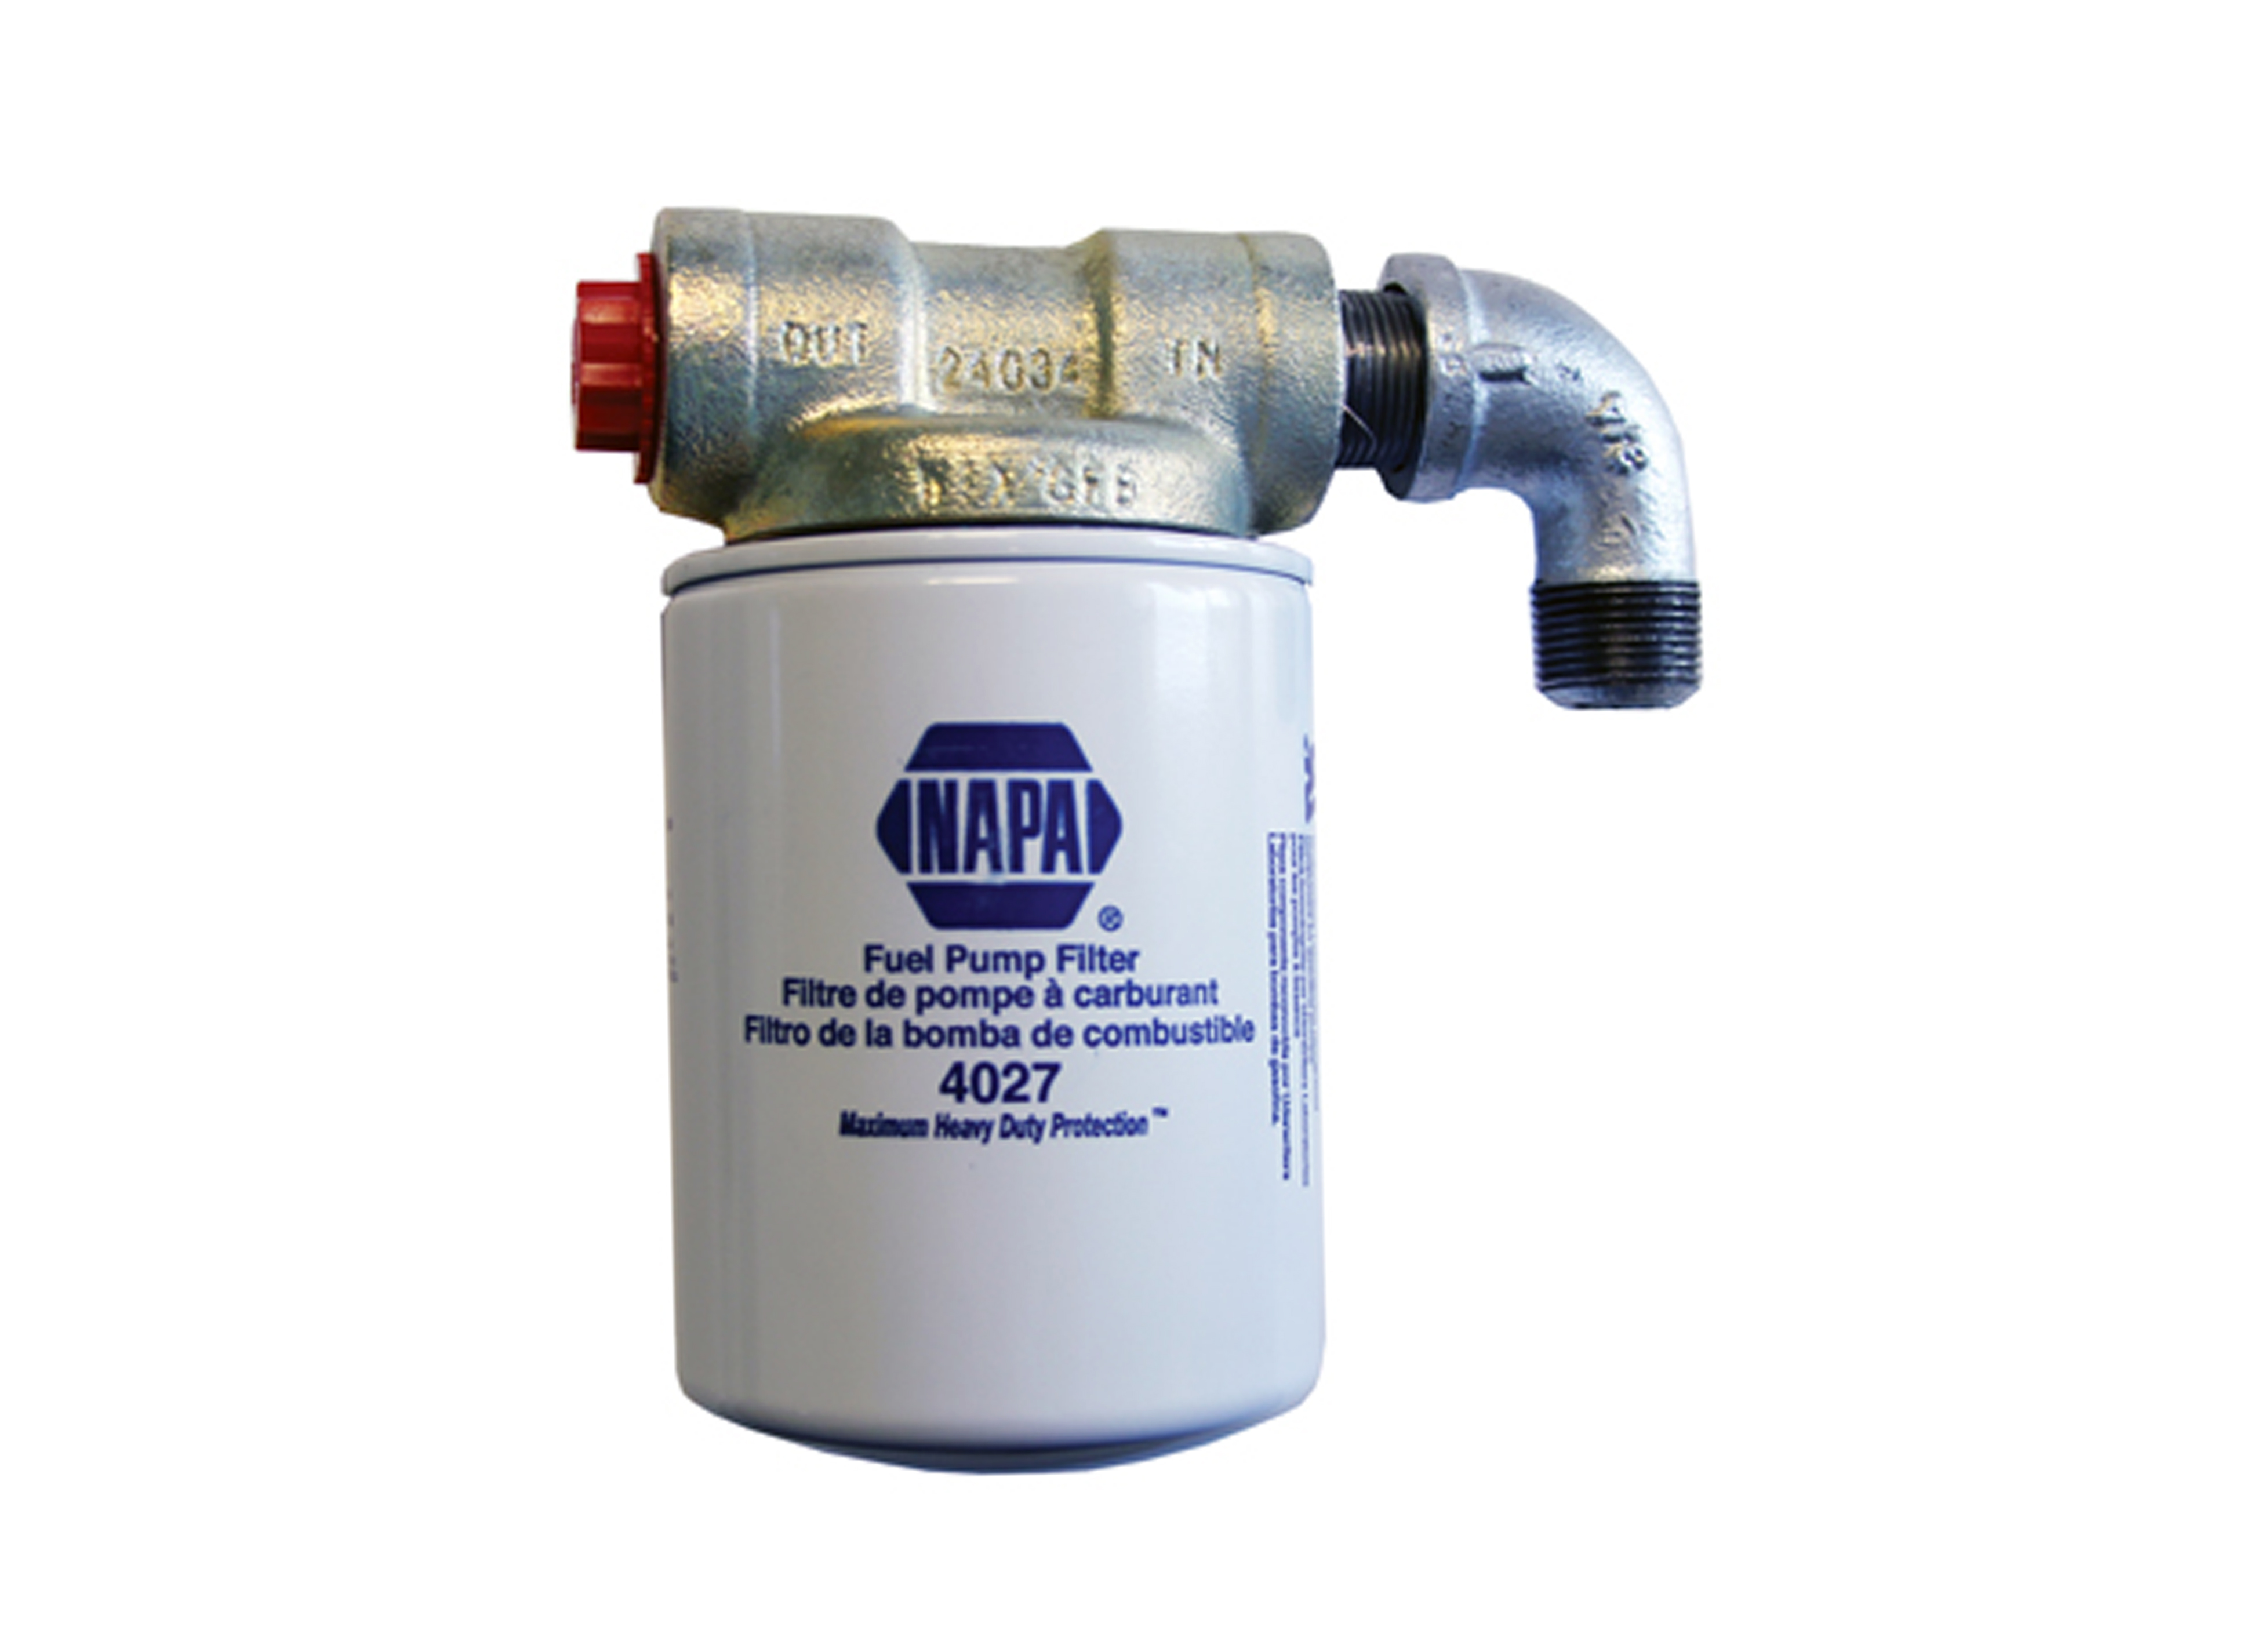 napa in line fuel filter kit for refueling tank transfer flow, incnapa in line fuel filter kit for refueling tank